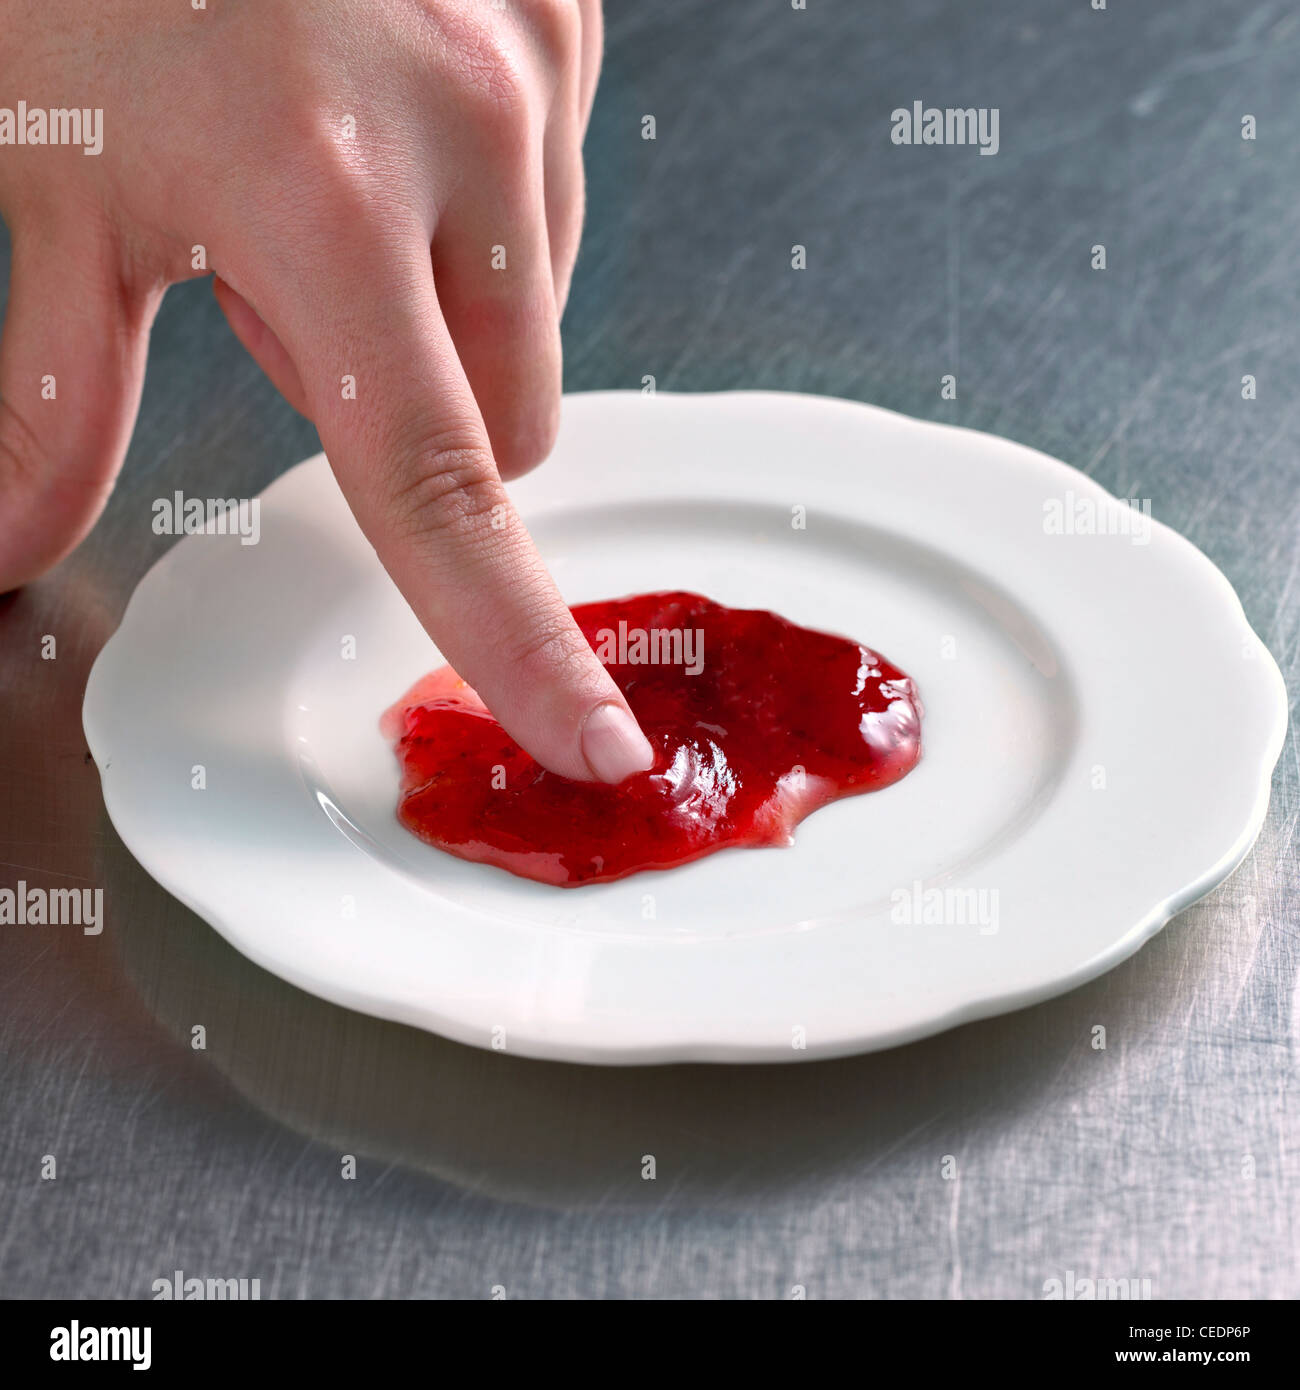 Hand doing wrinkle test of jam, close-up - Stock Image